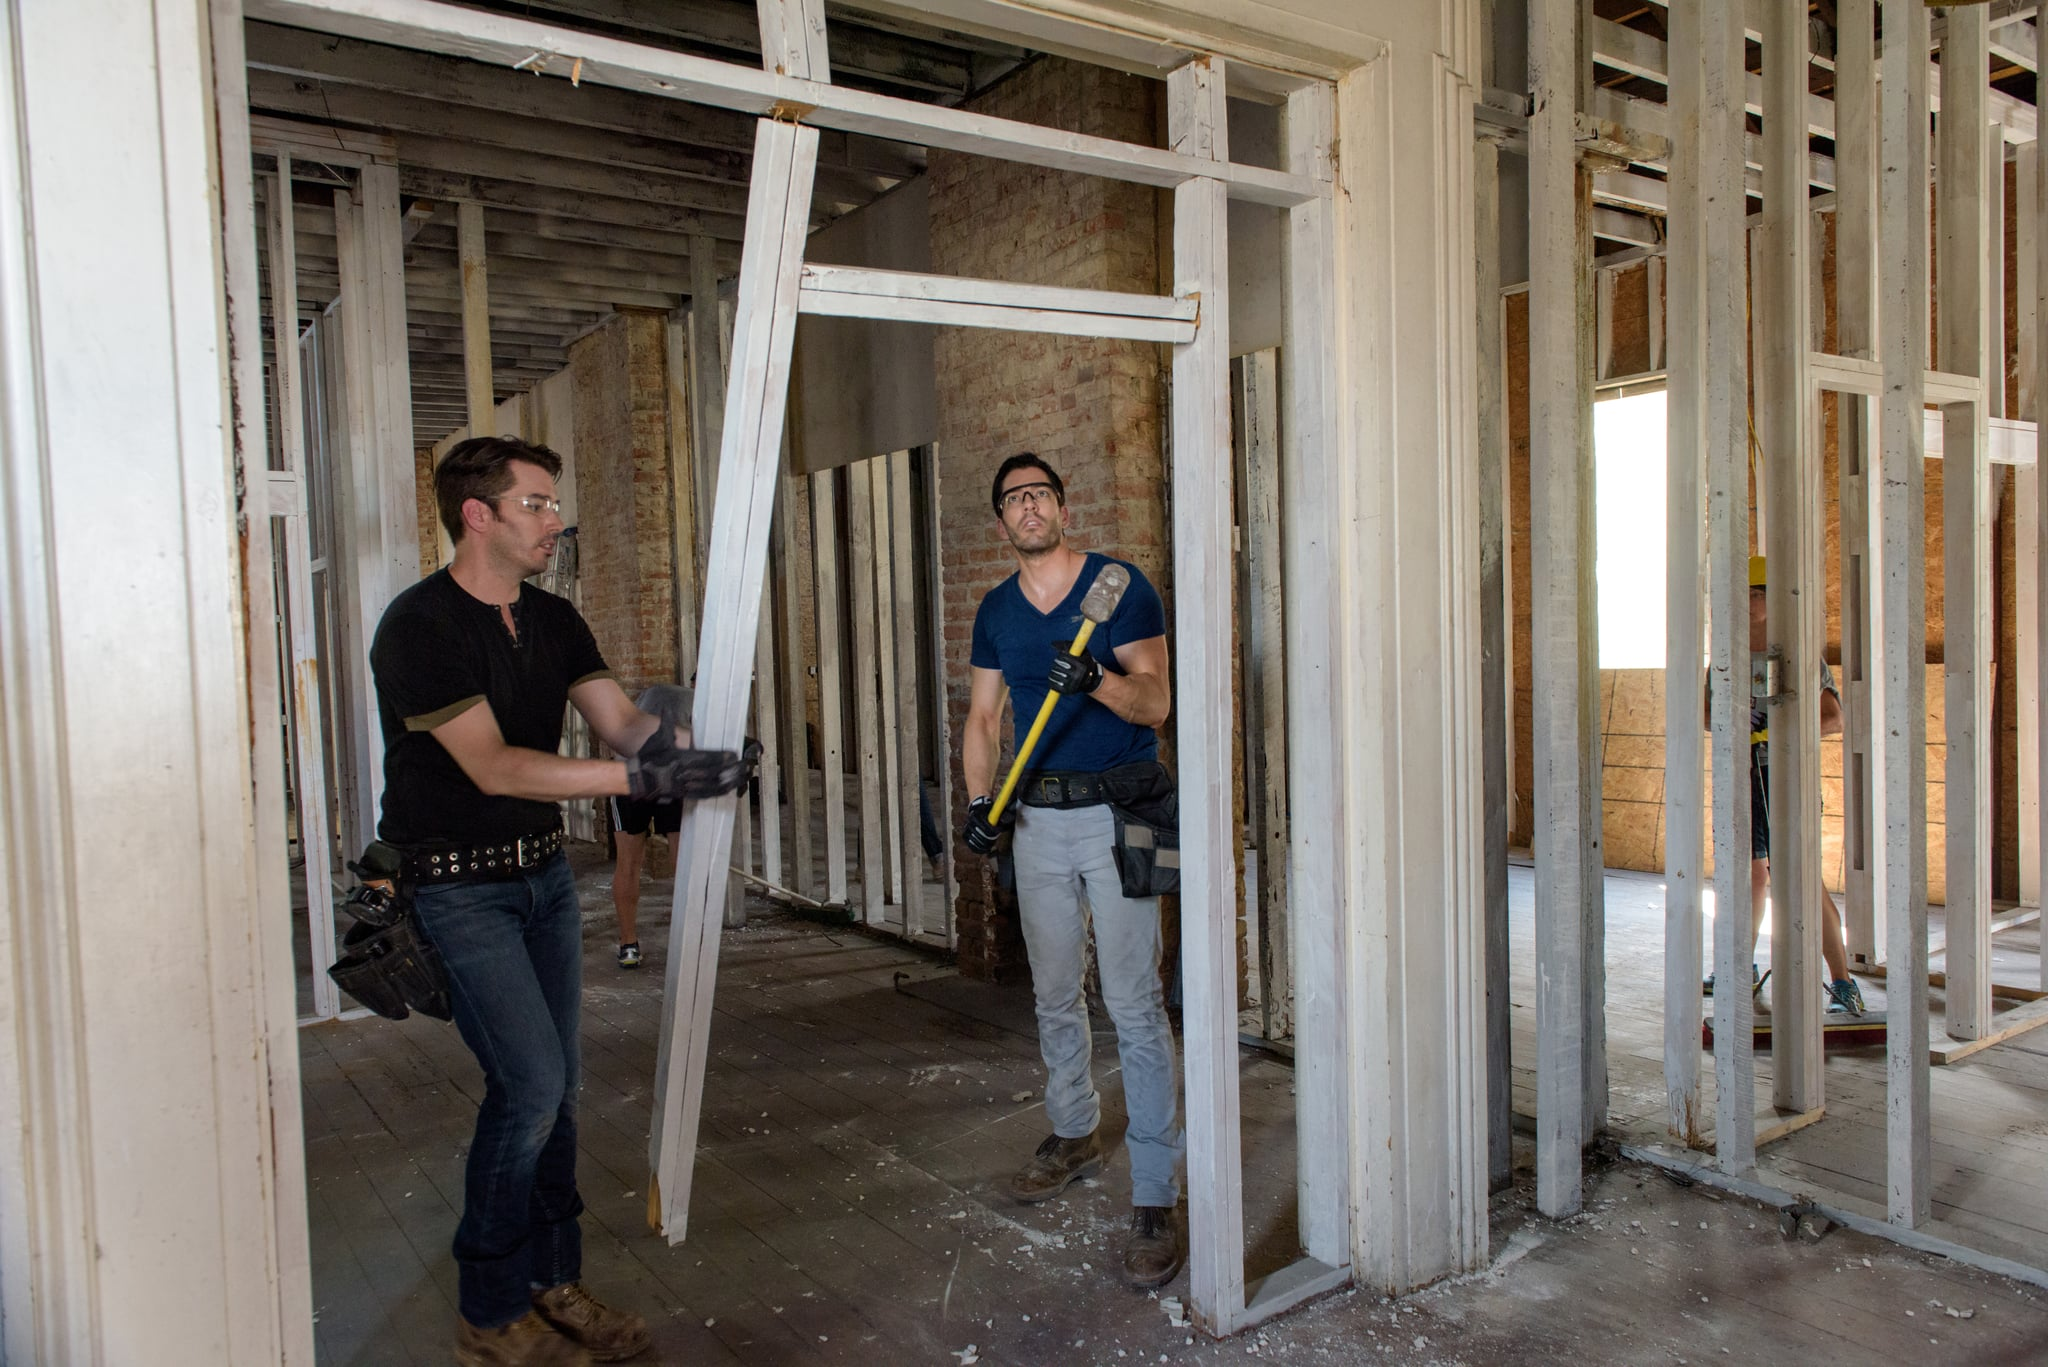 Property Brothers Take New Orleans Popsugar Home